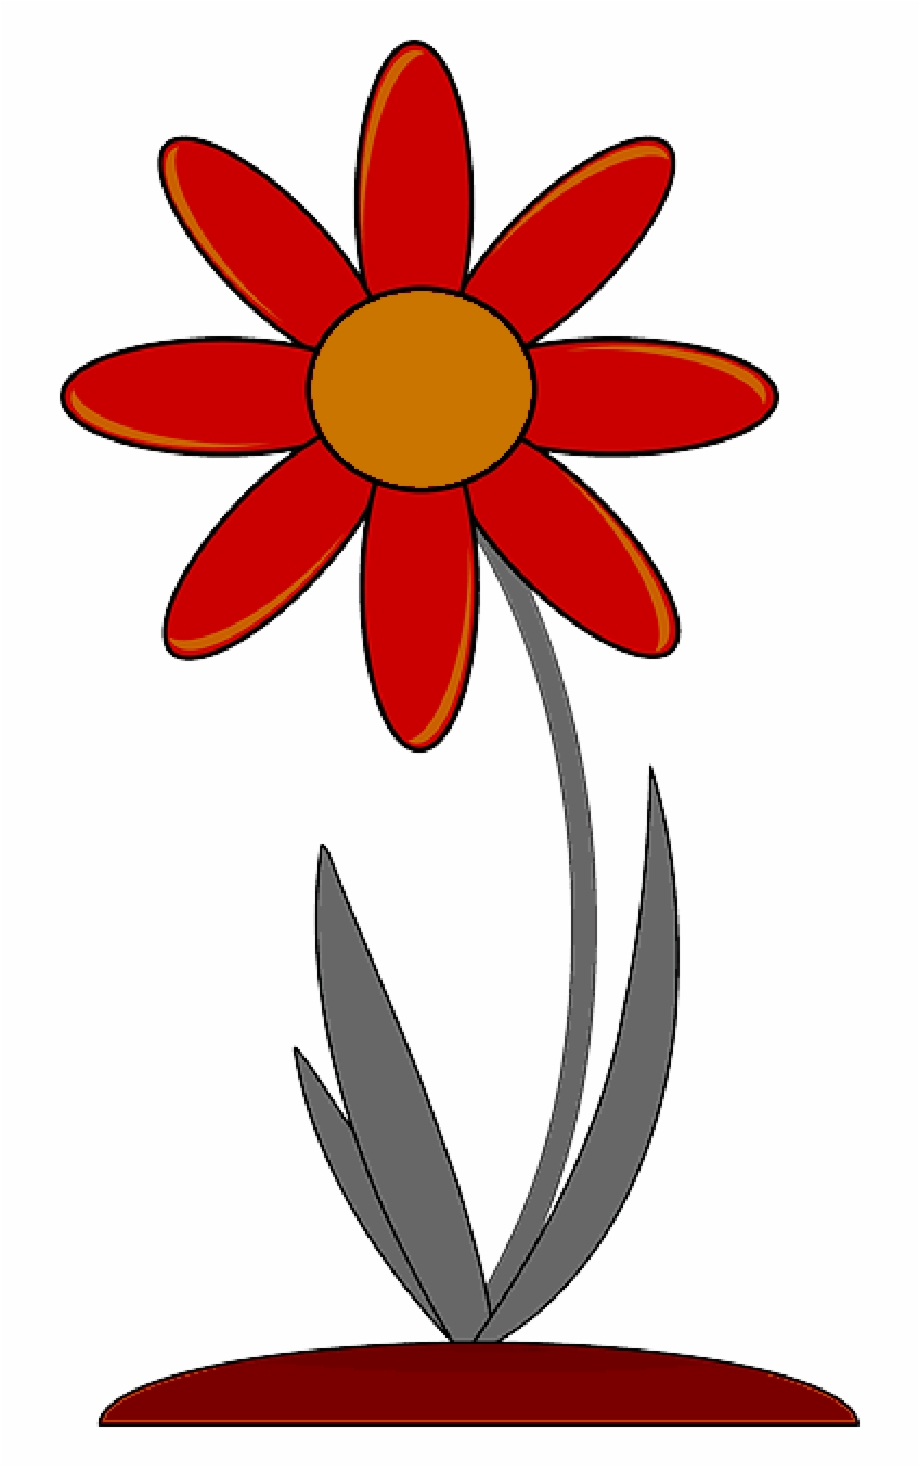 Red, Outline, Drawing, Plants, Flower, Flowers, Cartoon.